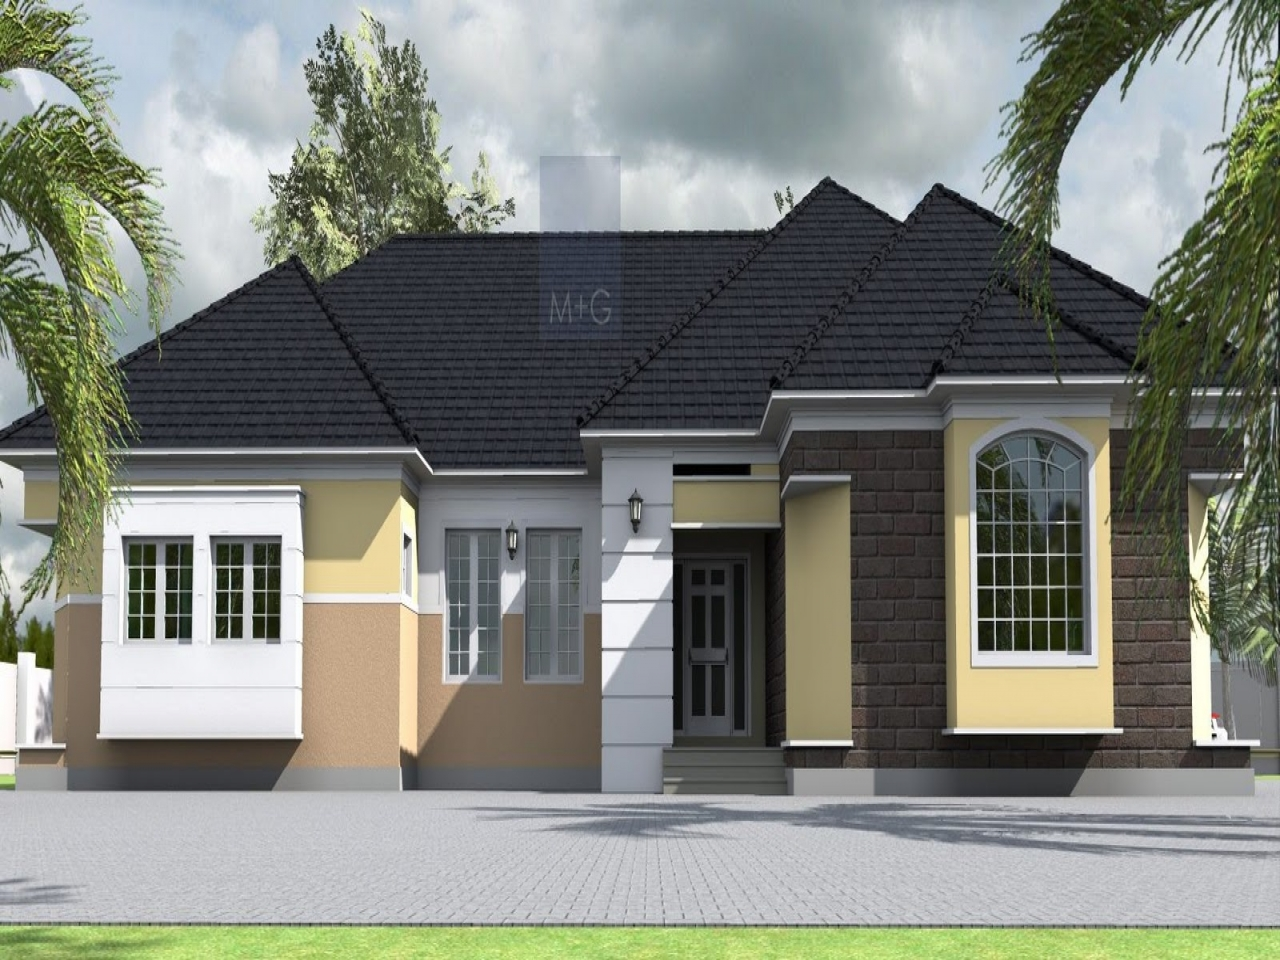 4 Bedroom House Layout Plan 4 Bedroom Bungalow in Nigeria ...